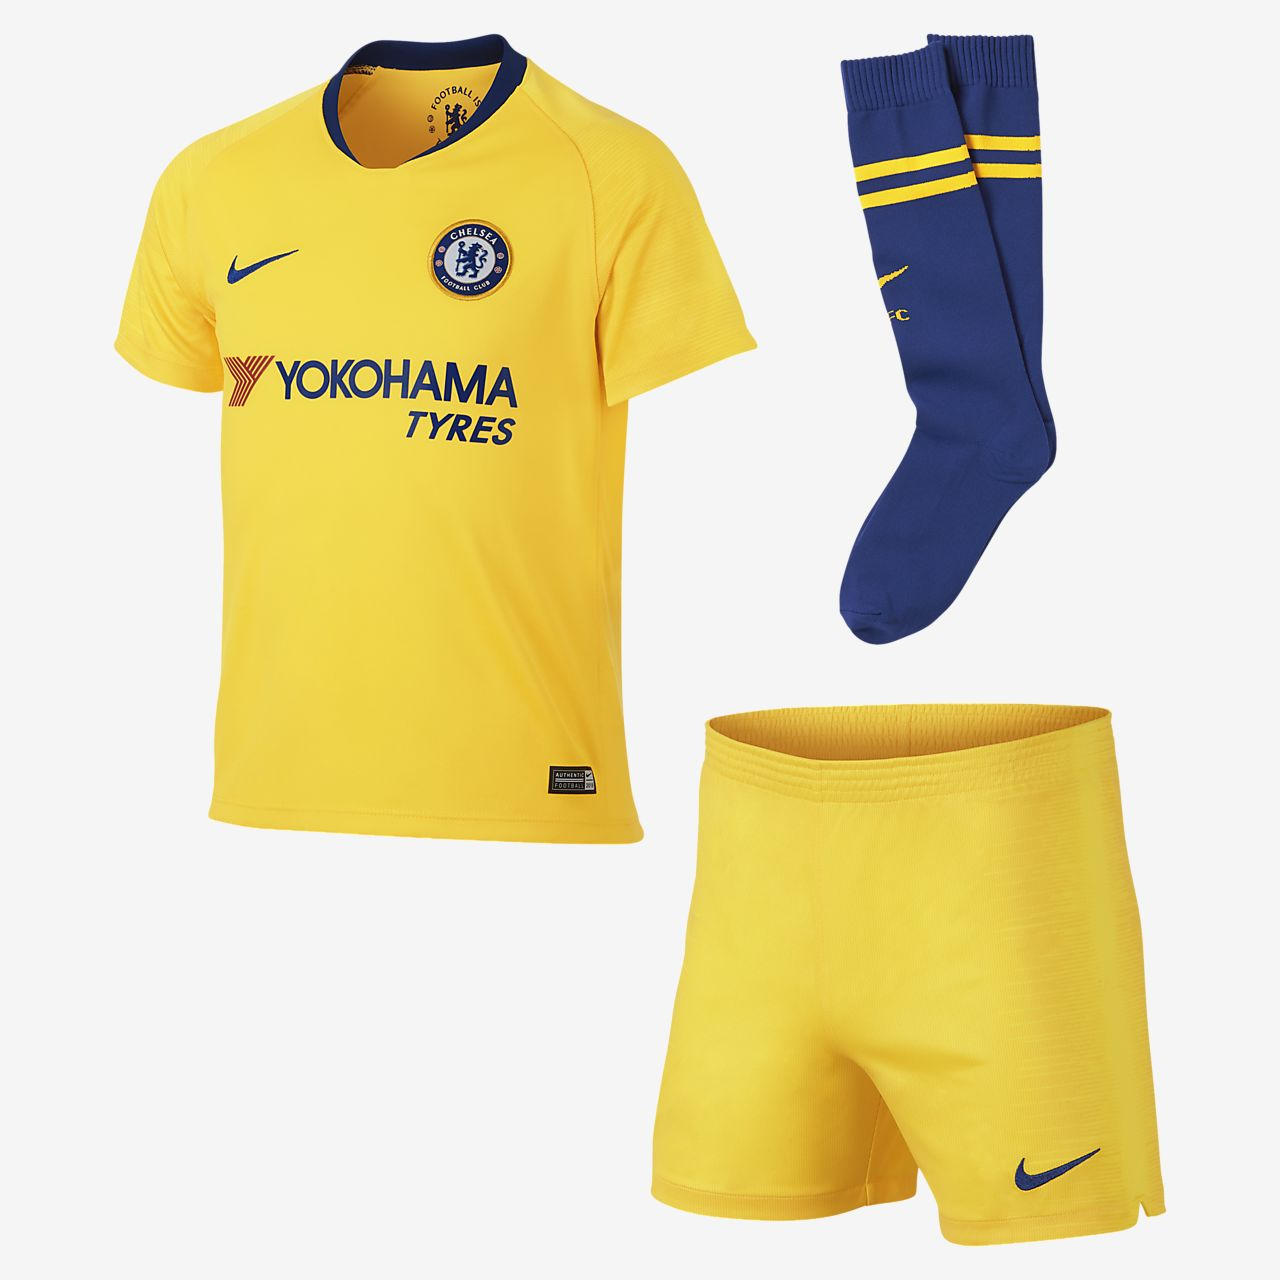 78c84d78865 2018/19 Chelsea FC Stadium Away Younger Kids' Football Kit. Nike.com ZA